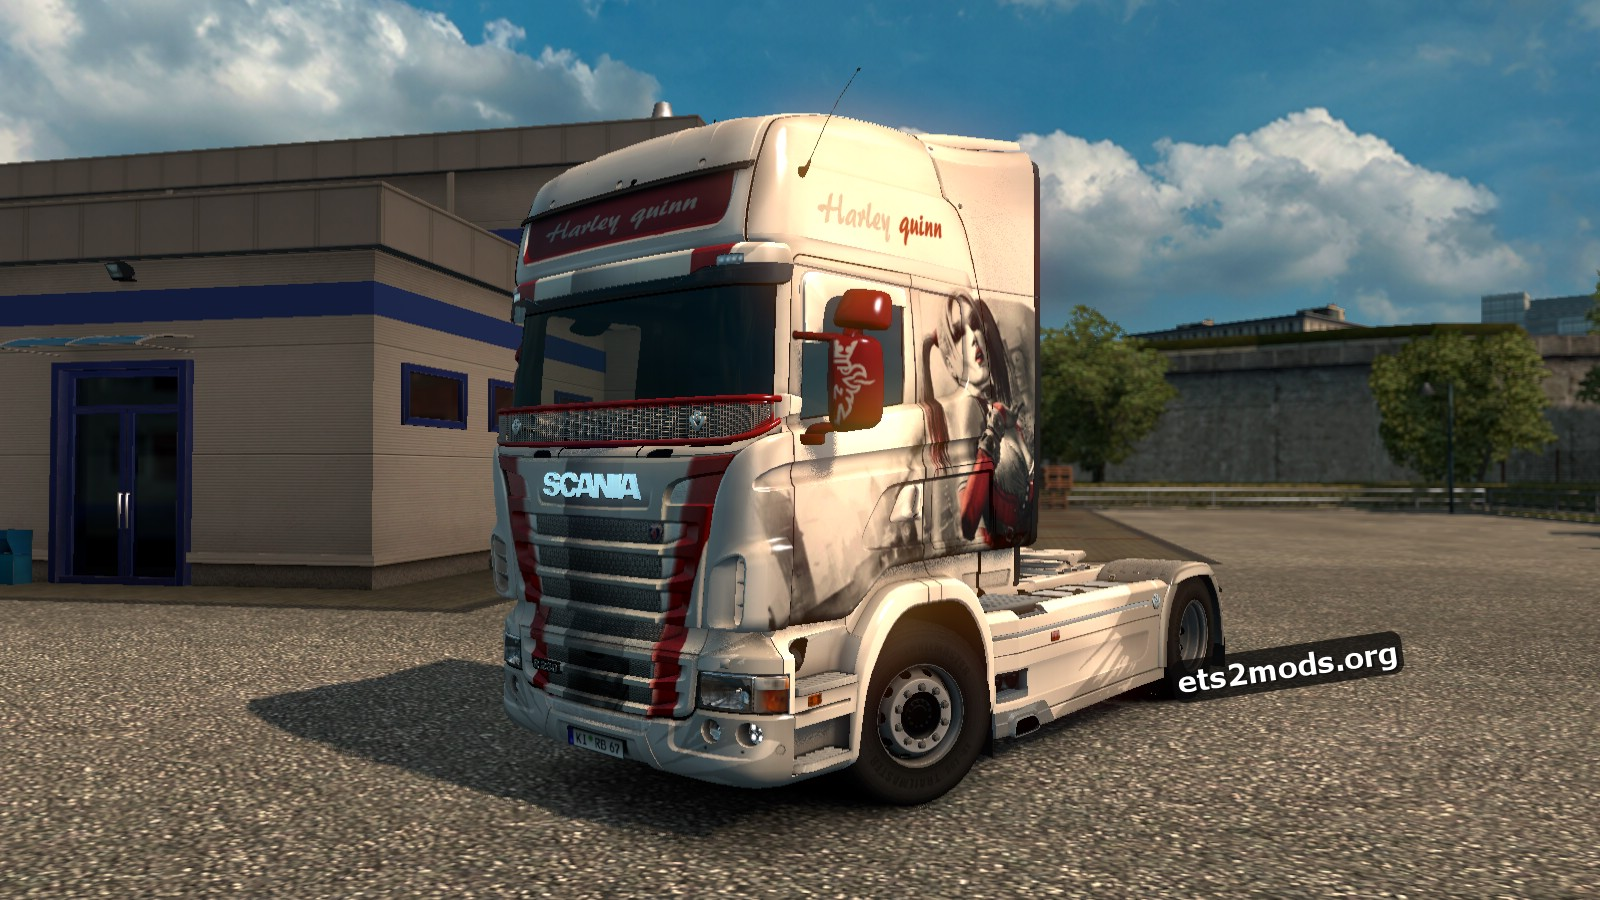 Harley Quinn Skin for Scania RJL